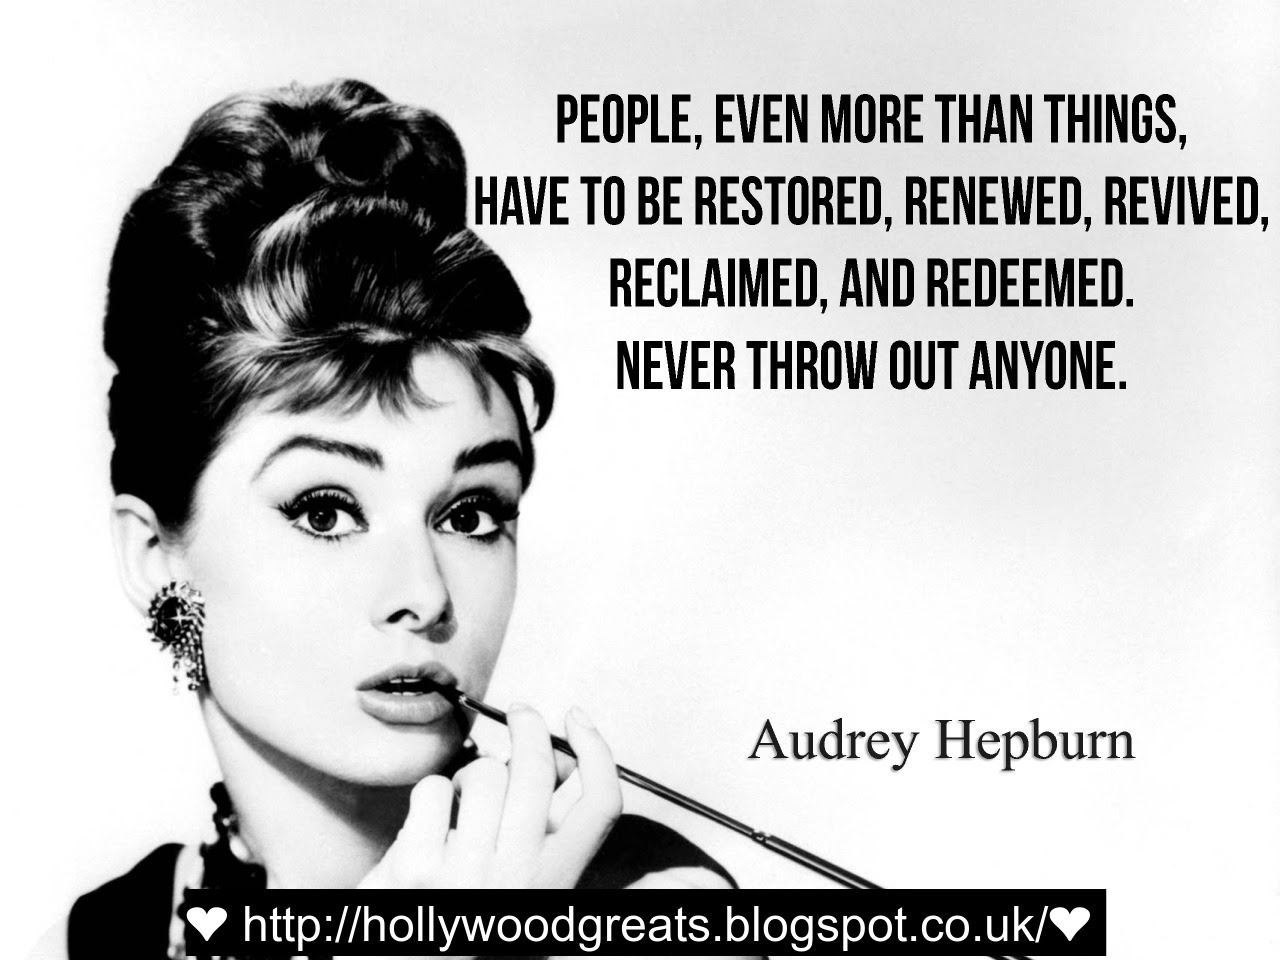 class classy classic noir audreyhpeburn beautiful lady quote lifequote faith friends elegant elegance movie hollywood blakc white fashion style audreyhepburn